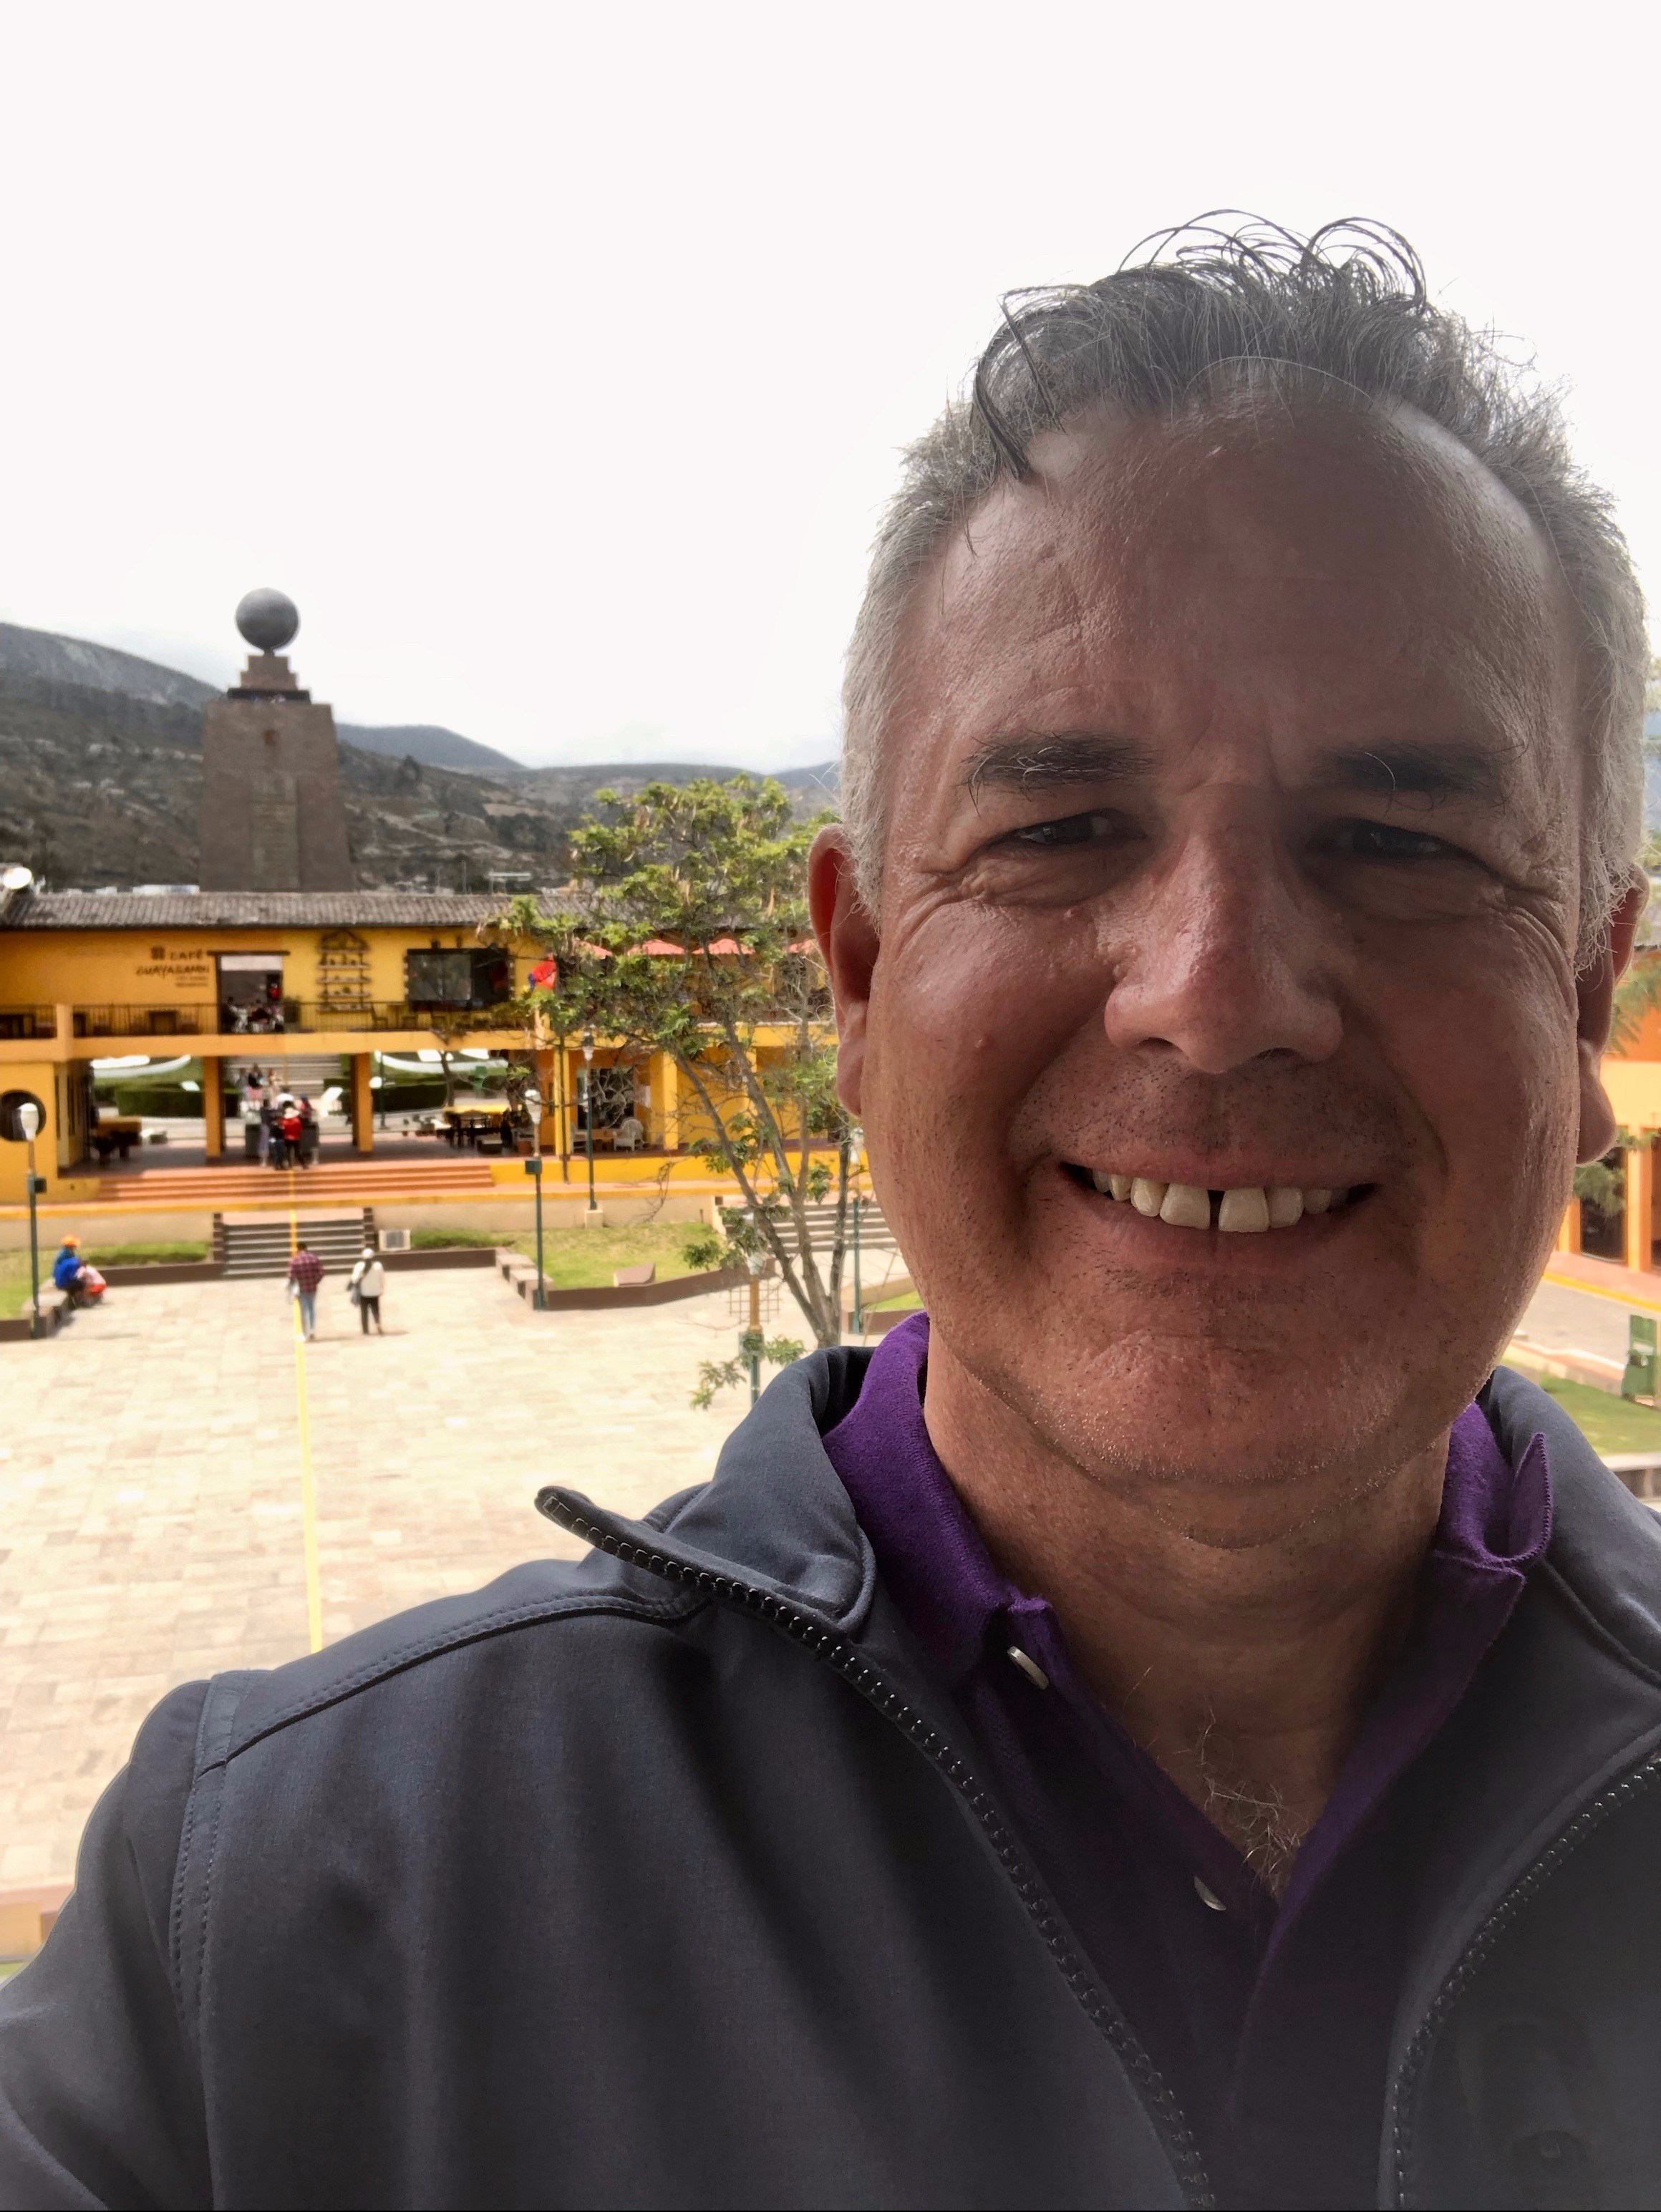 Dave in Quito - The Middle of the World